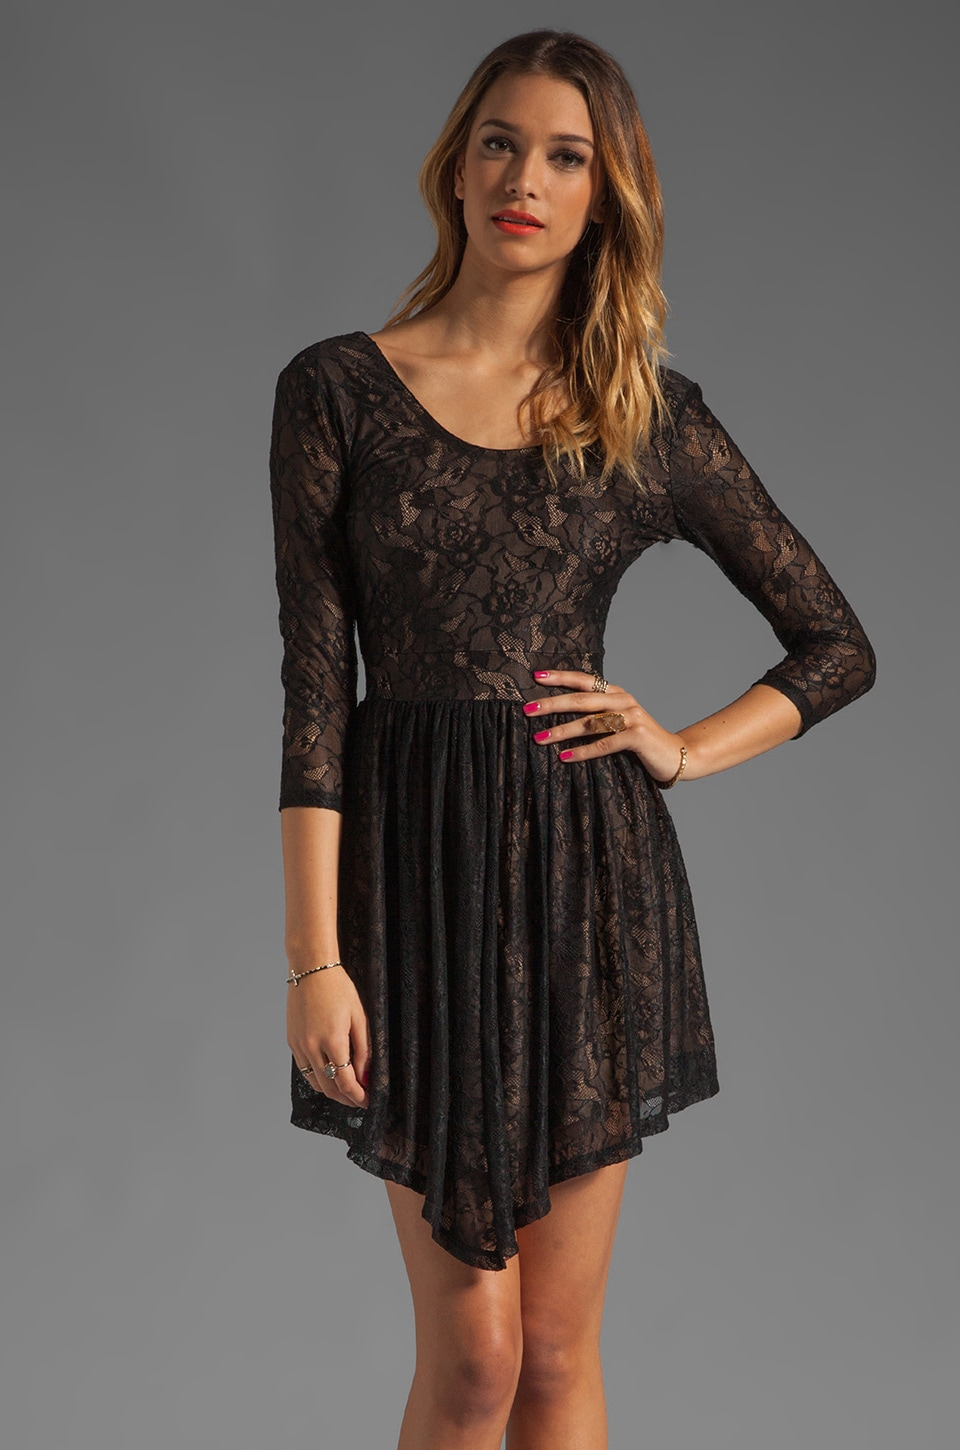 Lovers + Friends Senorita Mini Dress in Black Lace